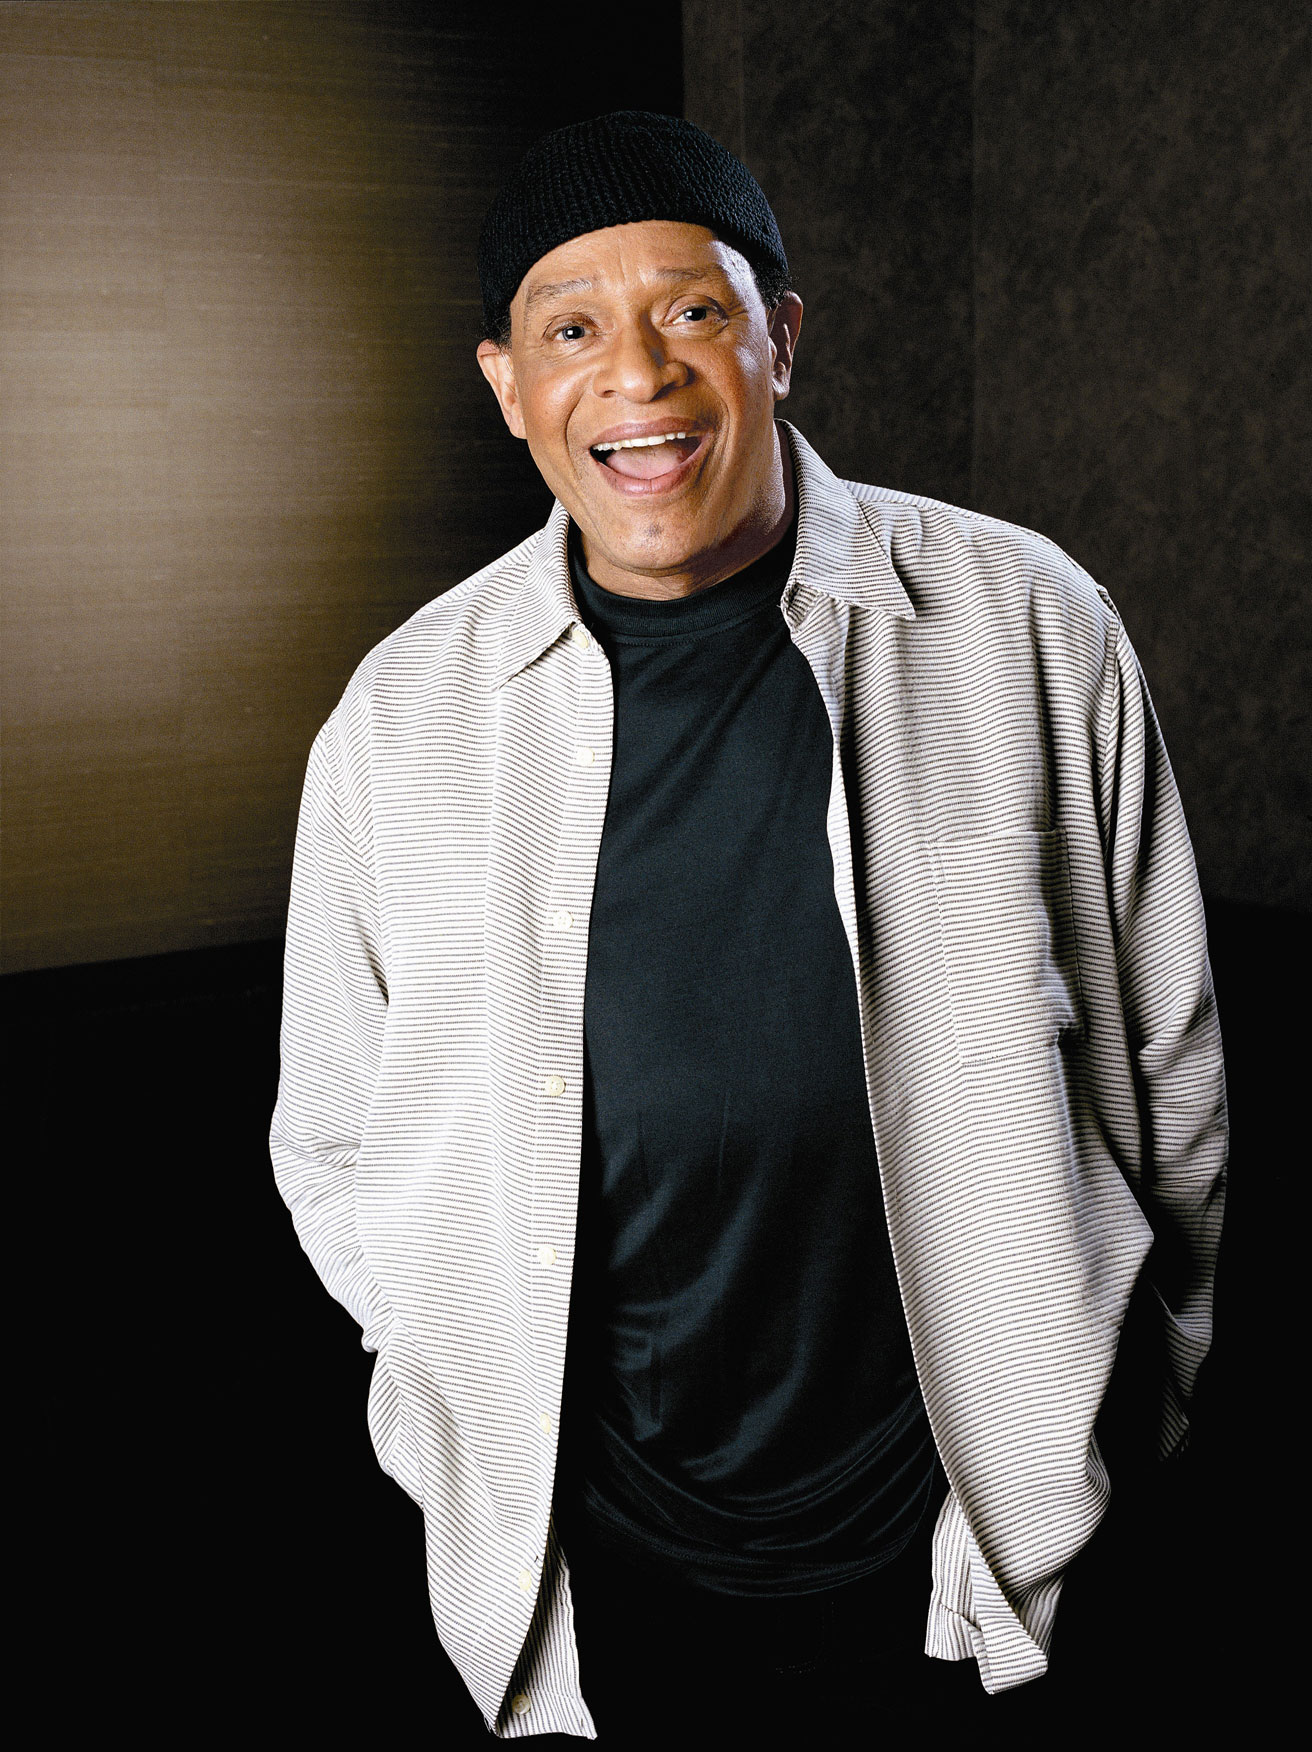 Photo of Al Jarreau 1940-2017